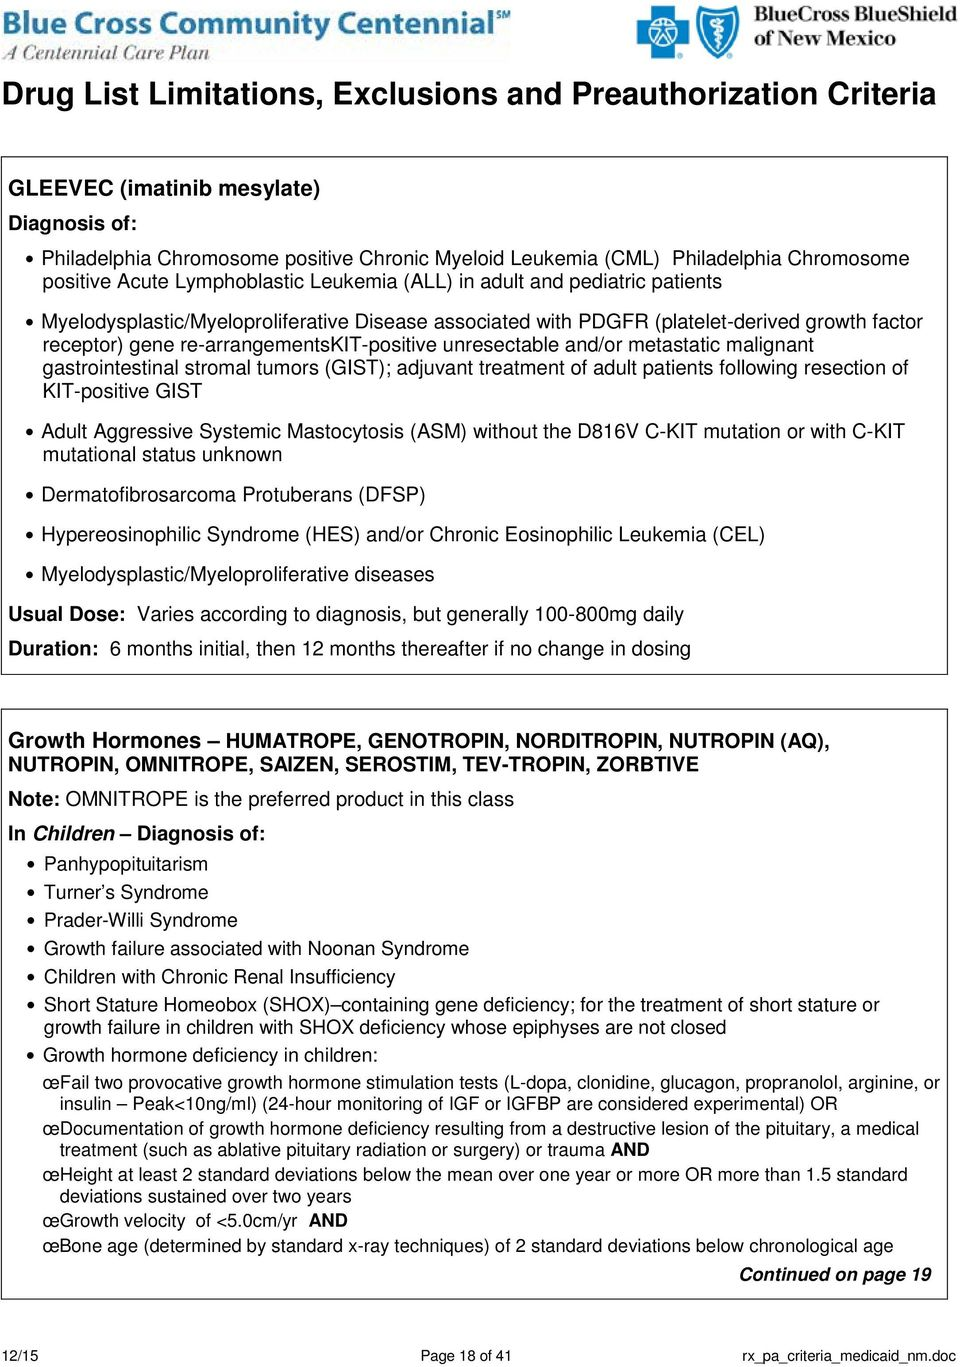 stromal tumors (GIST); adjuvant treatment of adult patients following resection of KIT-positive GIST Adult Aggressive Systemic Mastocytosis (ASM) without the D816V C-KIT mutation or with C-KIT